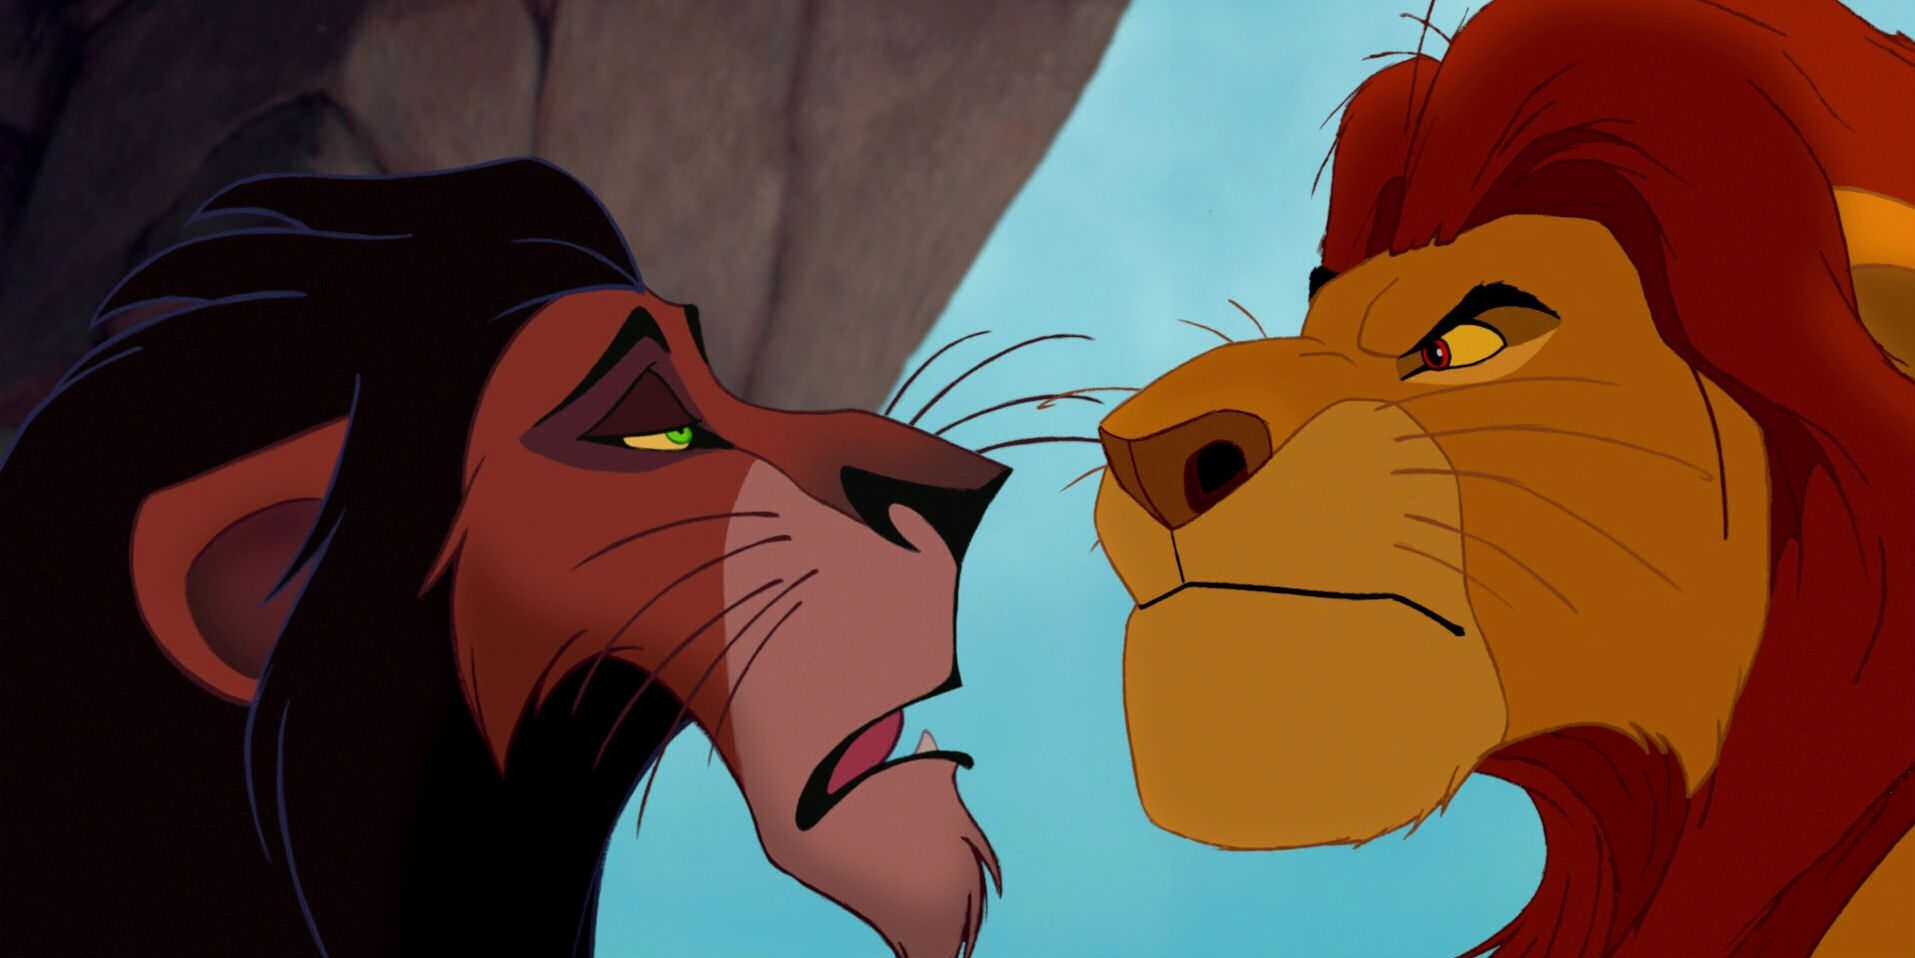 lion king analysis The lion king: analysis of development the lion king: analysis of development in the lion king (disney, 1994), a young lion cub undergoes a deep and powerful lesson of life while developing his morals and personality along the way.